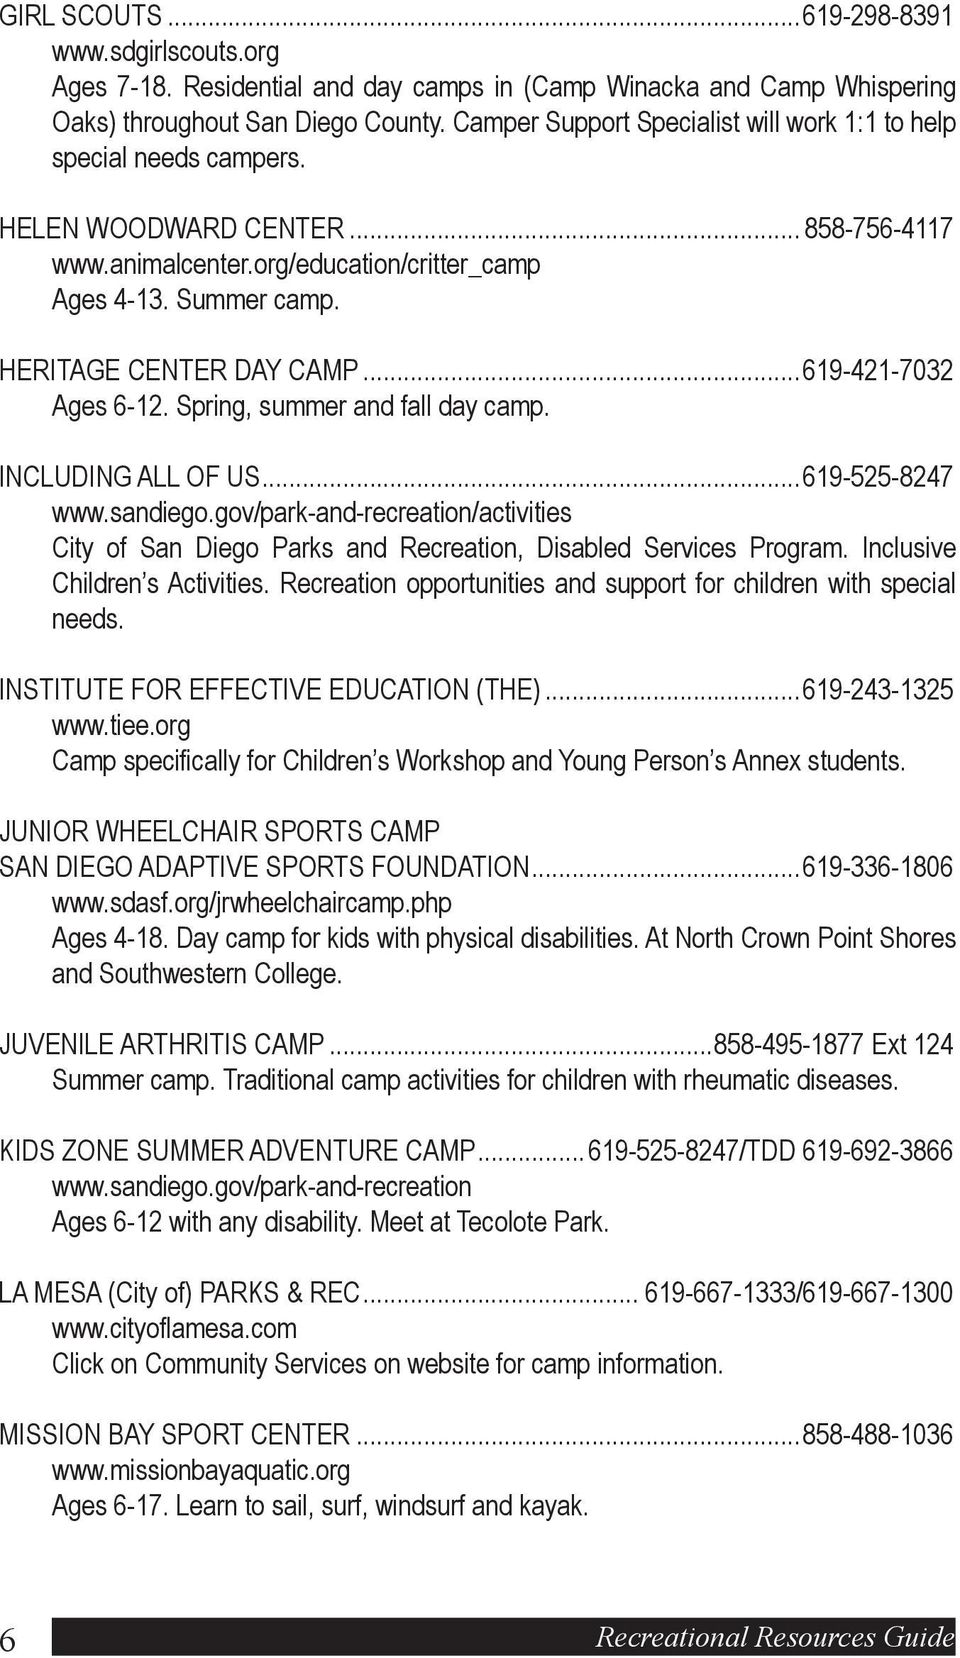 HERITAGE CENTER DAY CAMP...619-421-7032 Ages 6-12. Spring, summer and fall day camp. INCLUDING ALL OF US...619-525-8247 www.sandiego.